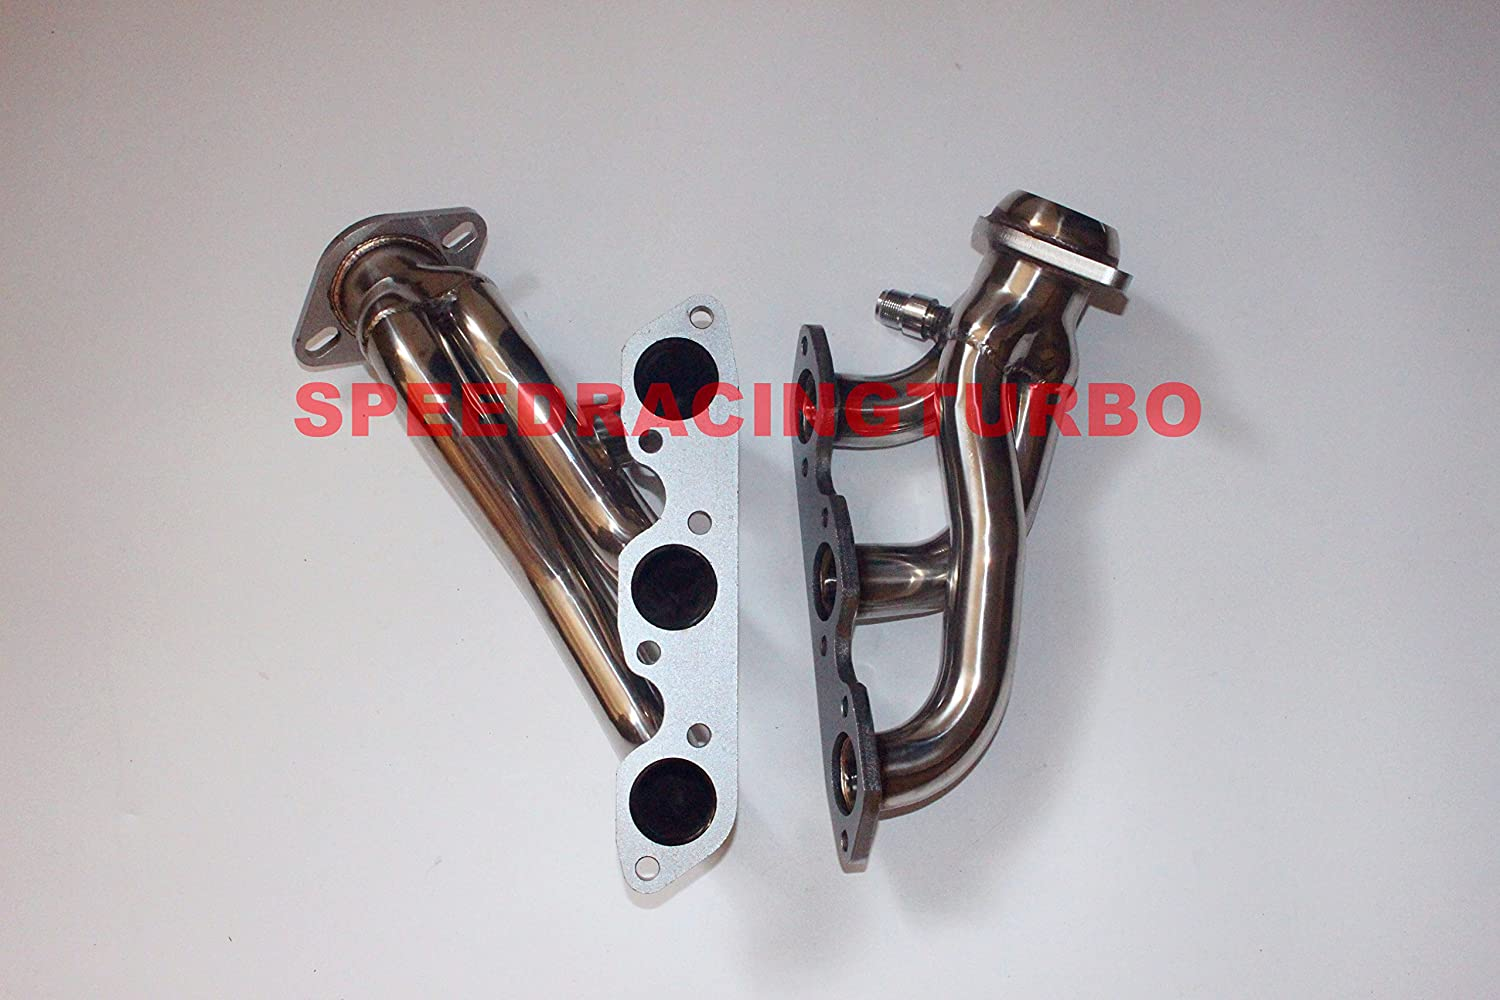 speedracingturbo Exhaust Header For 99-04 Ford Mustang V6 3.8l Stainless Steel Exhaust Shorty